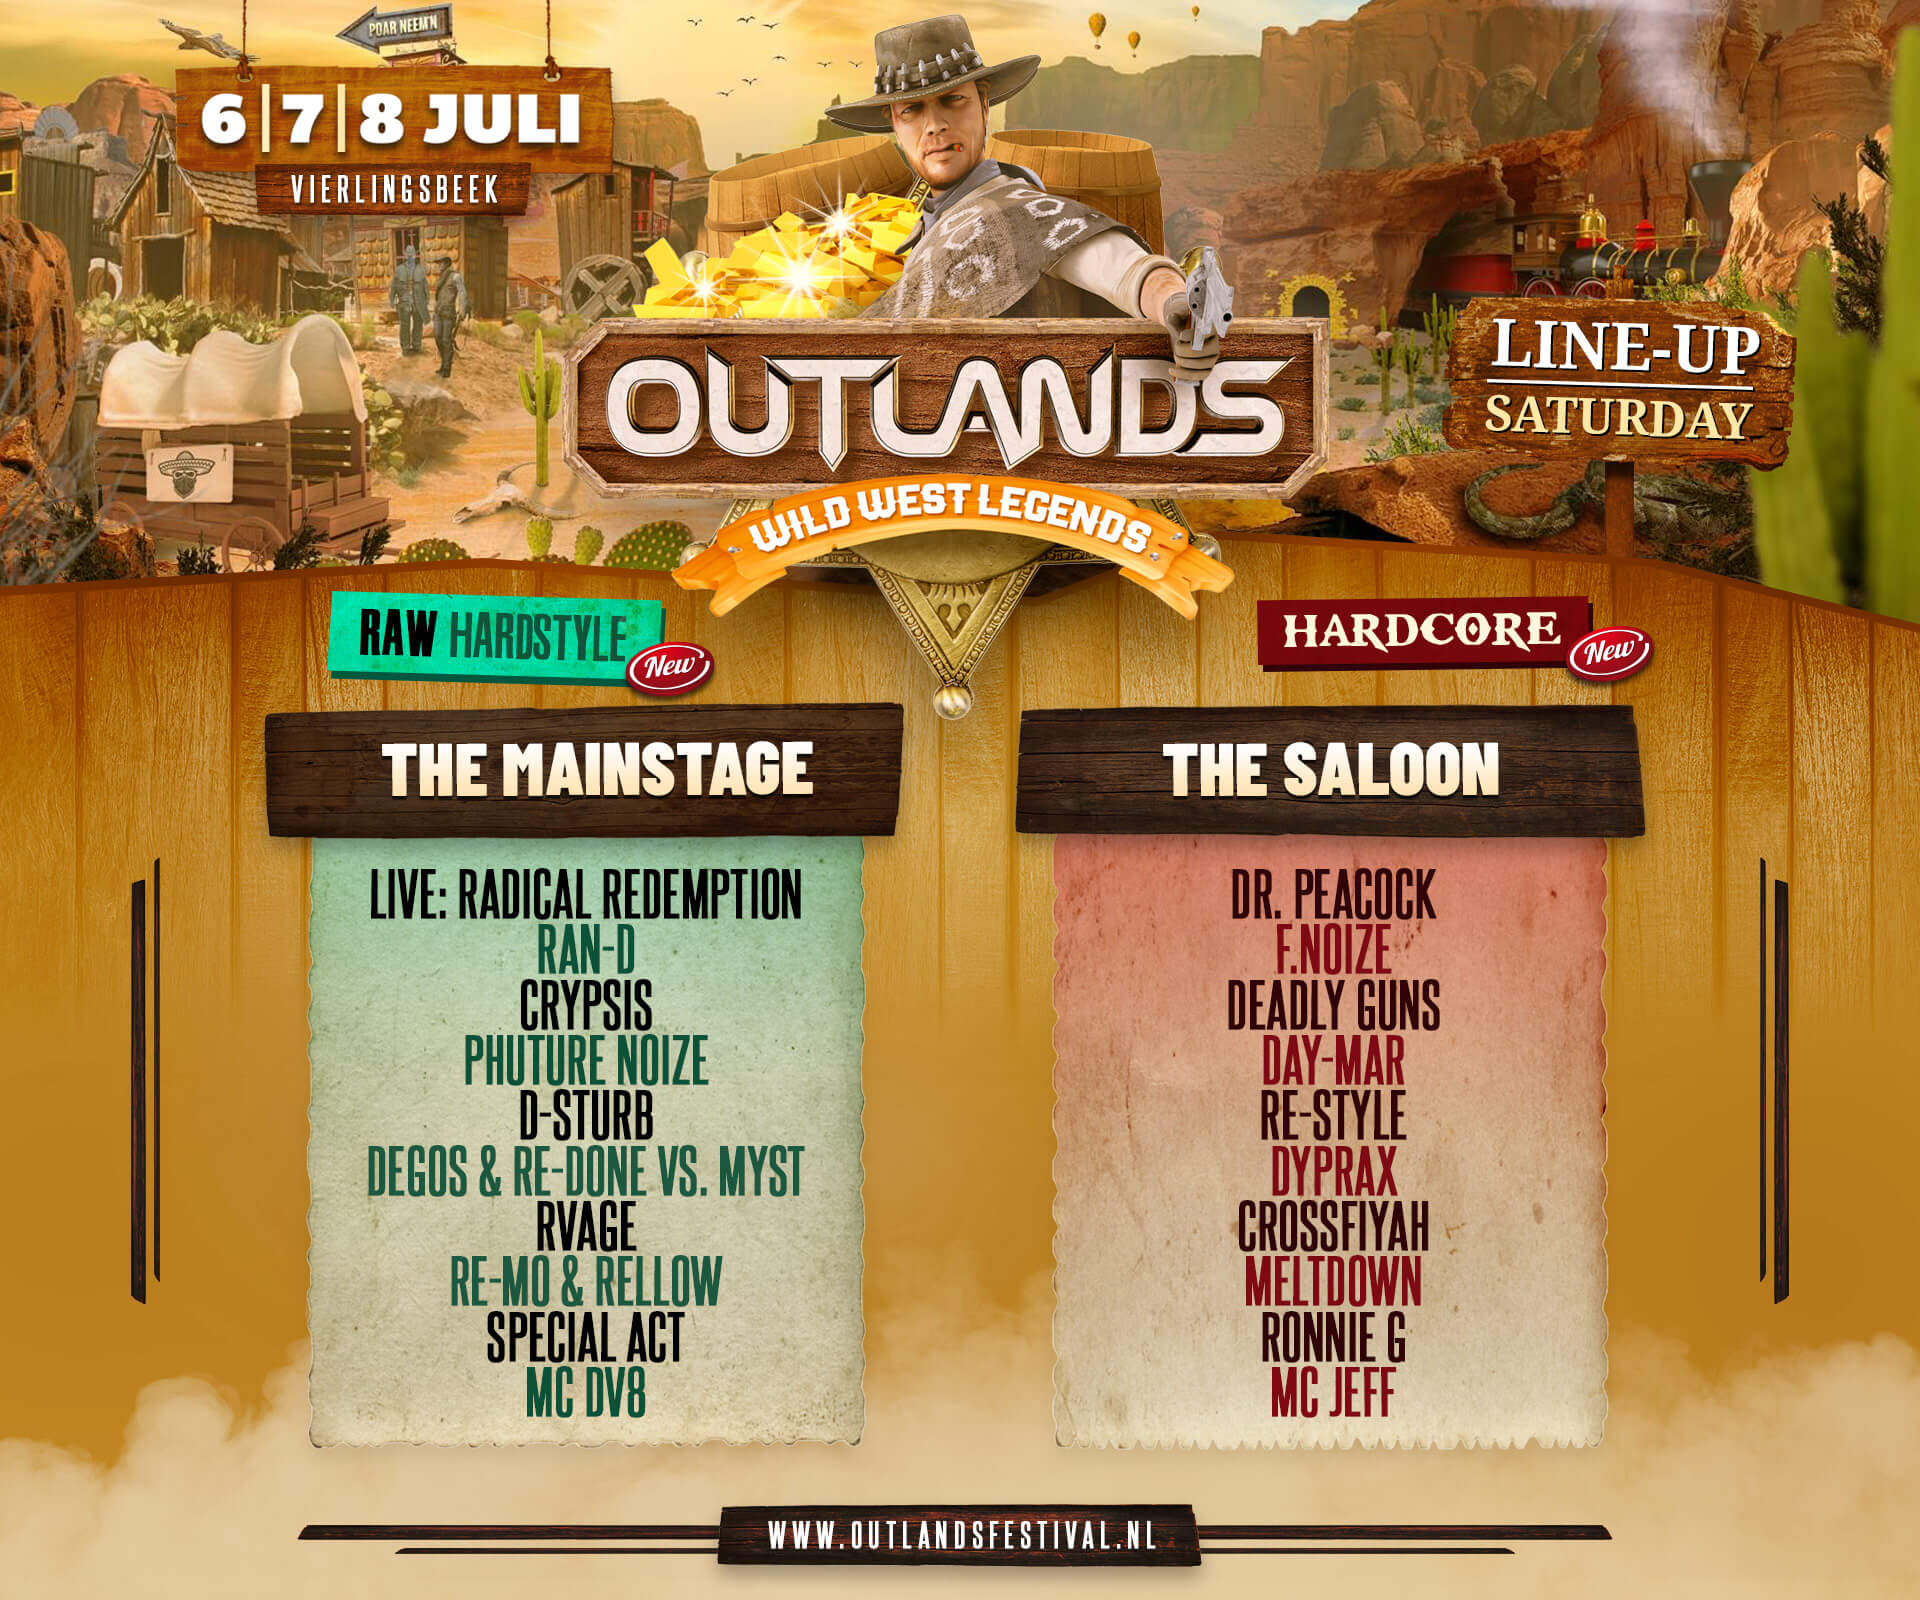 outlands18-site-lineup-saturday